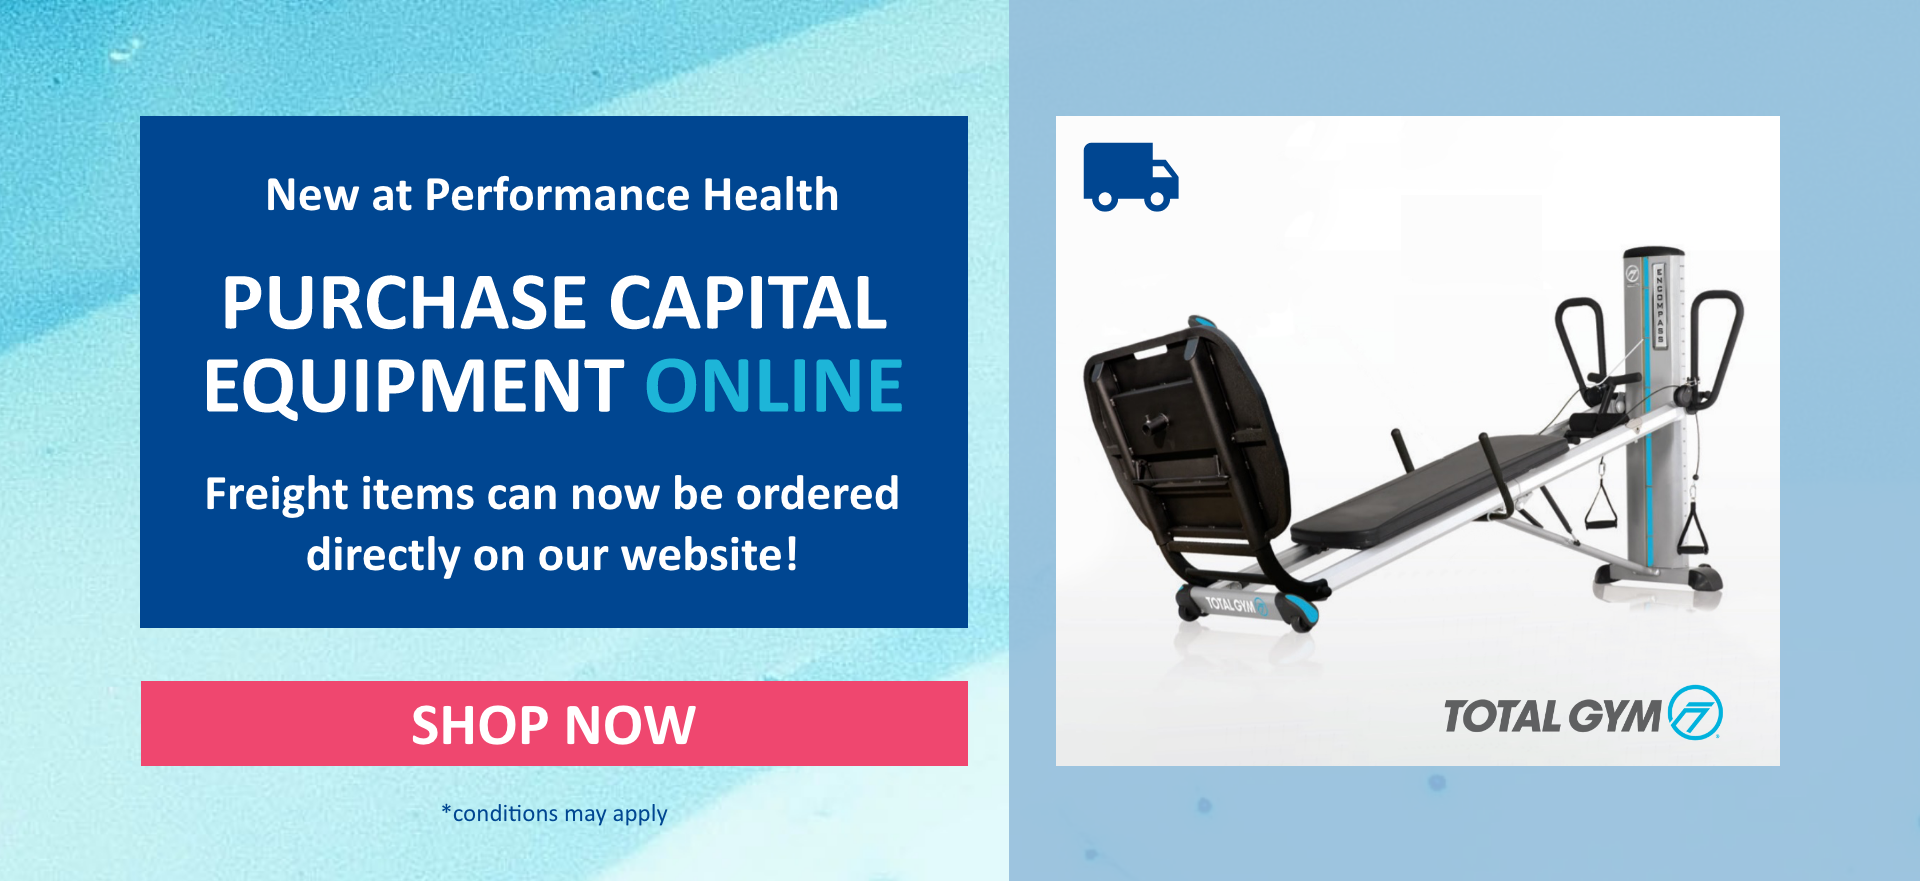 New at Performance Health; Purchase capital equipment including furniture, fitness & exercise equipment online. Shop now!